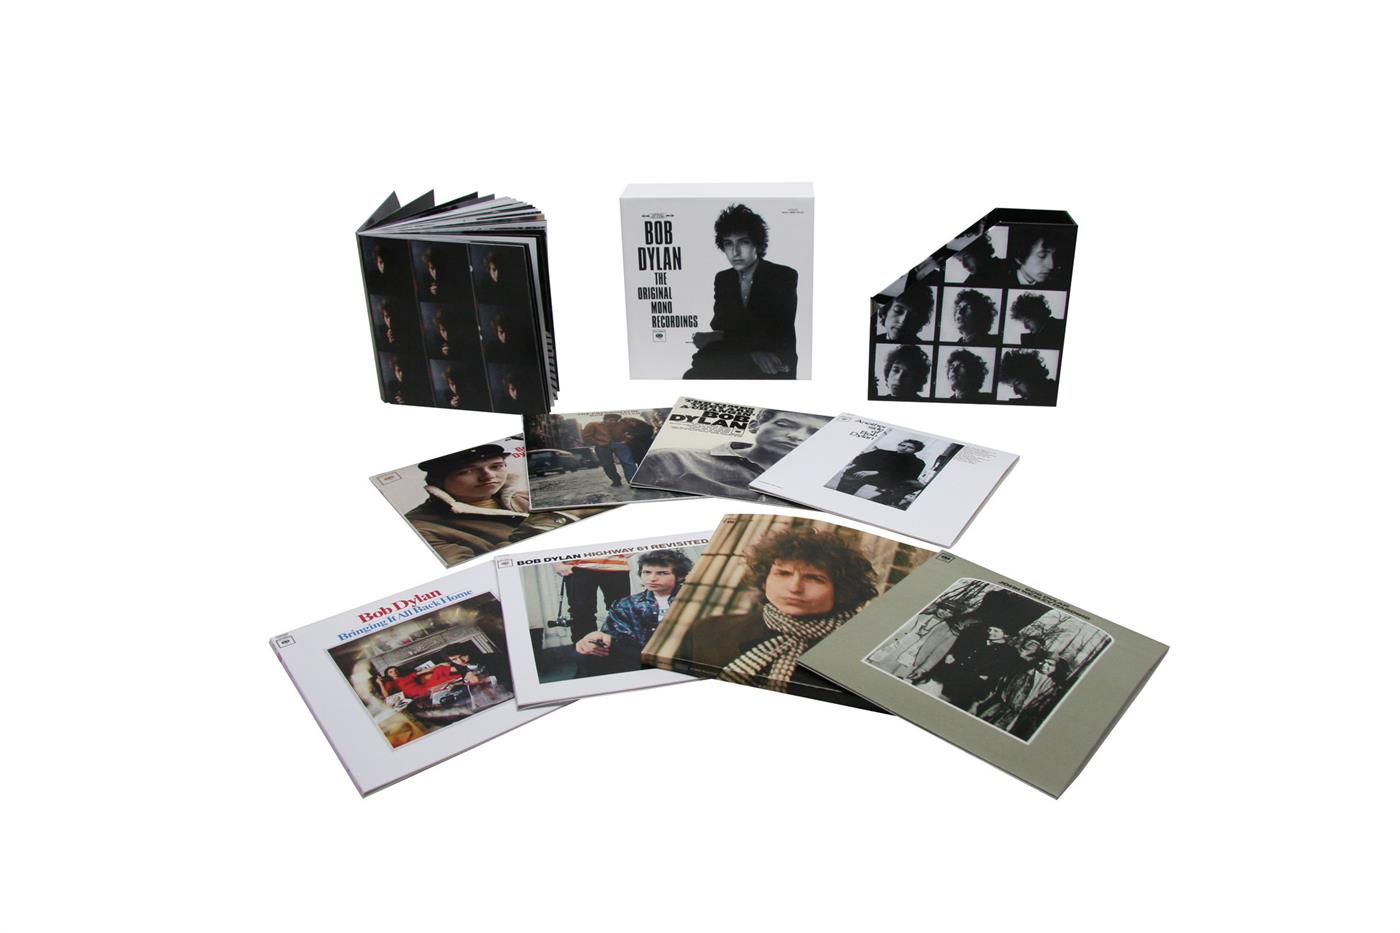 VXLDD516 Legacy Recordings  Bob Dylan The Mono Vinyl Box Set (9LP)